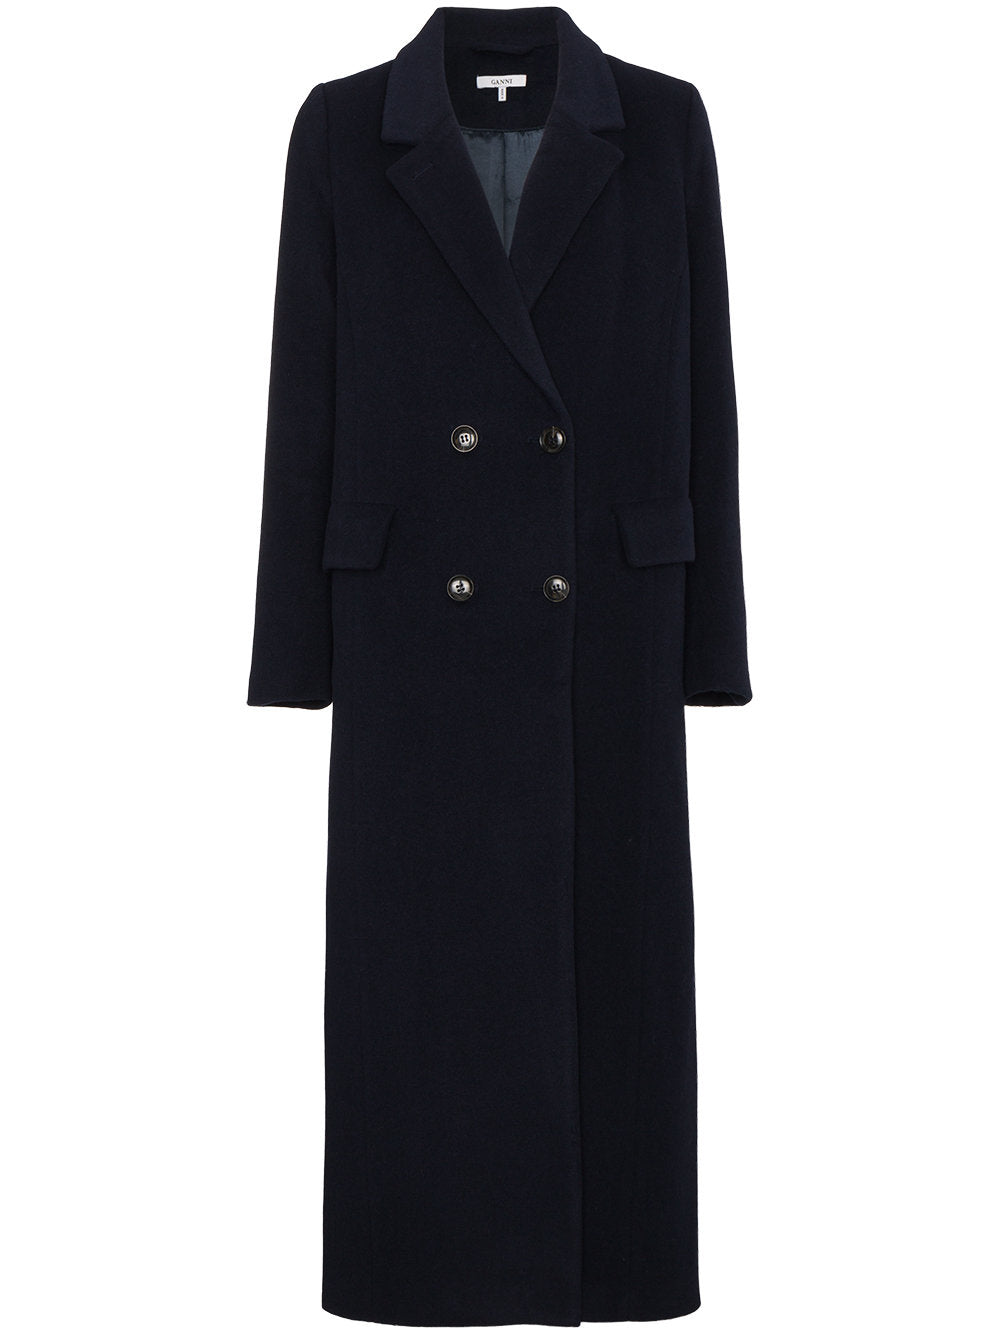 Ganni - Abbey navy blue wool coat featured in Capsule wardrobe on ownmuse.com